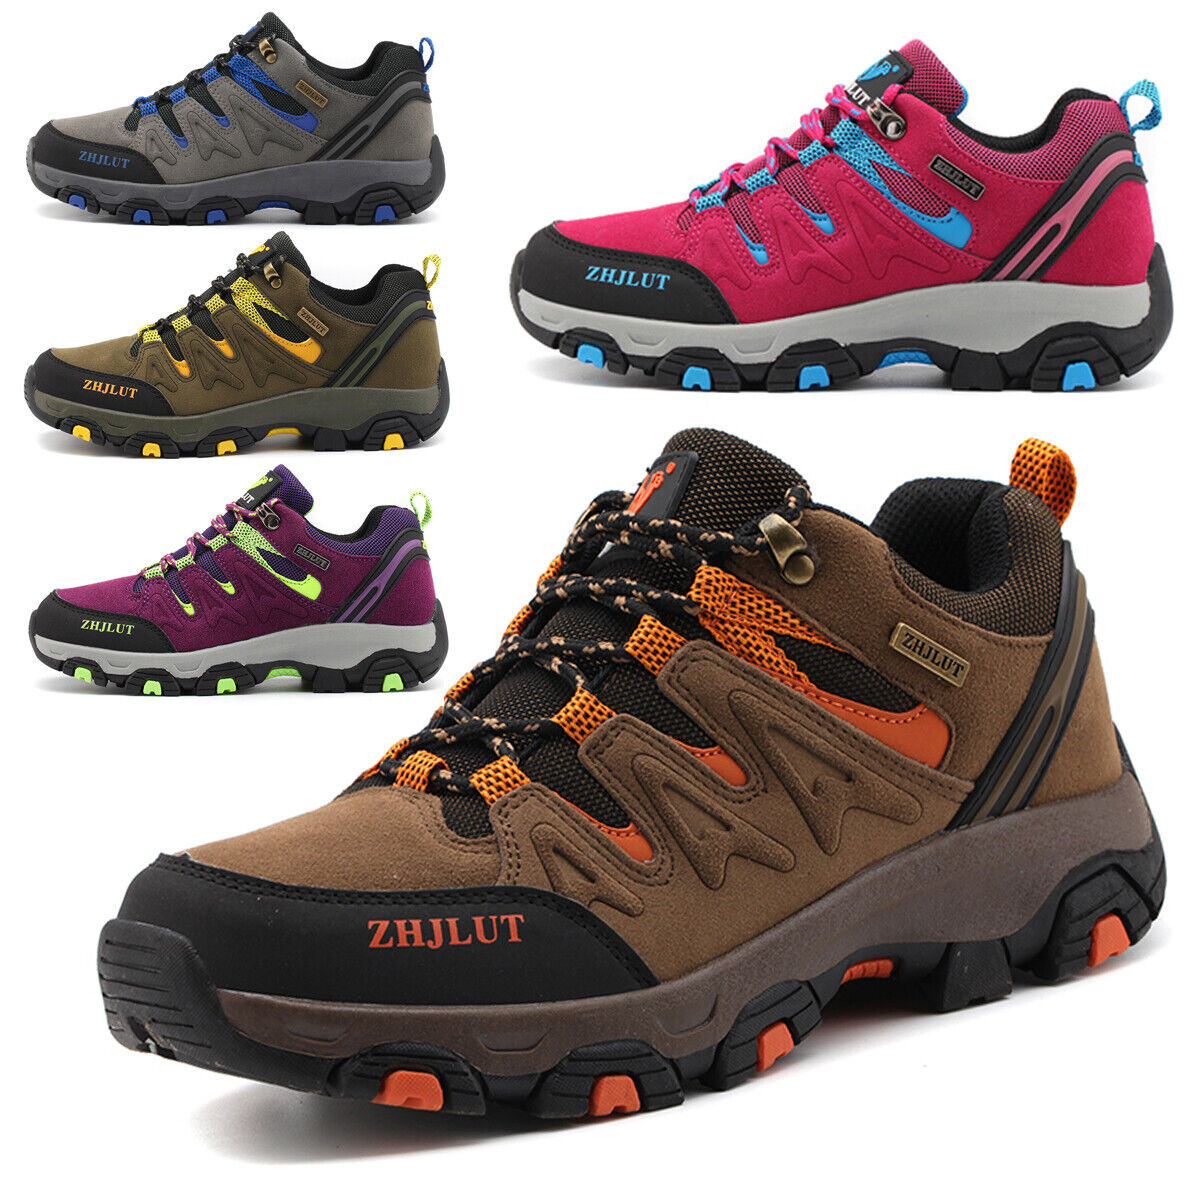 Sneakers Trail Trekking Breathable Men/'s Hiking Mountain Outdoor Climbing Shoes